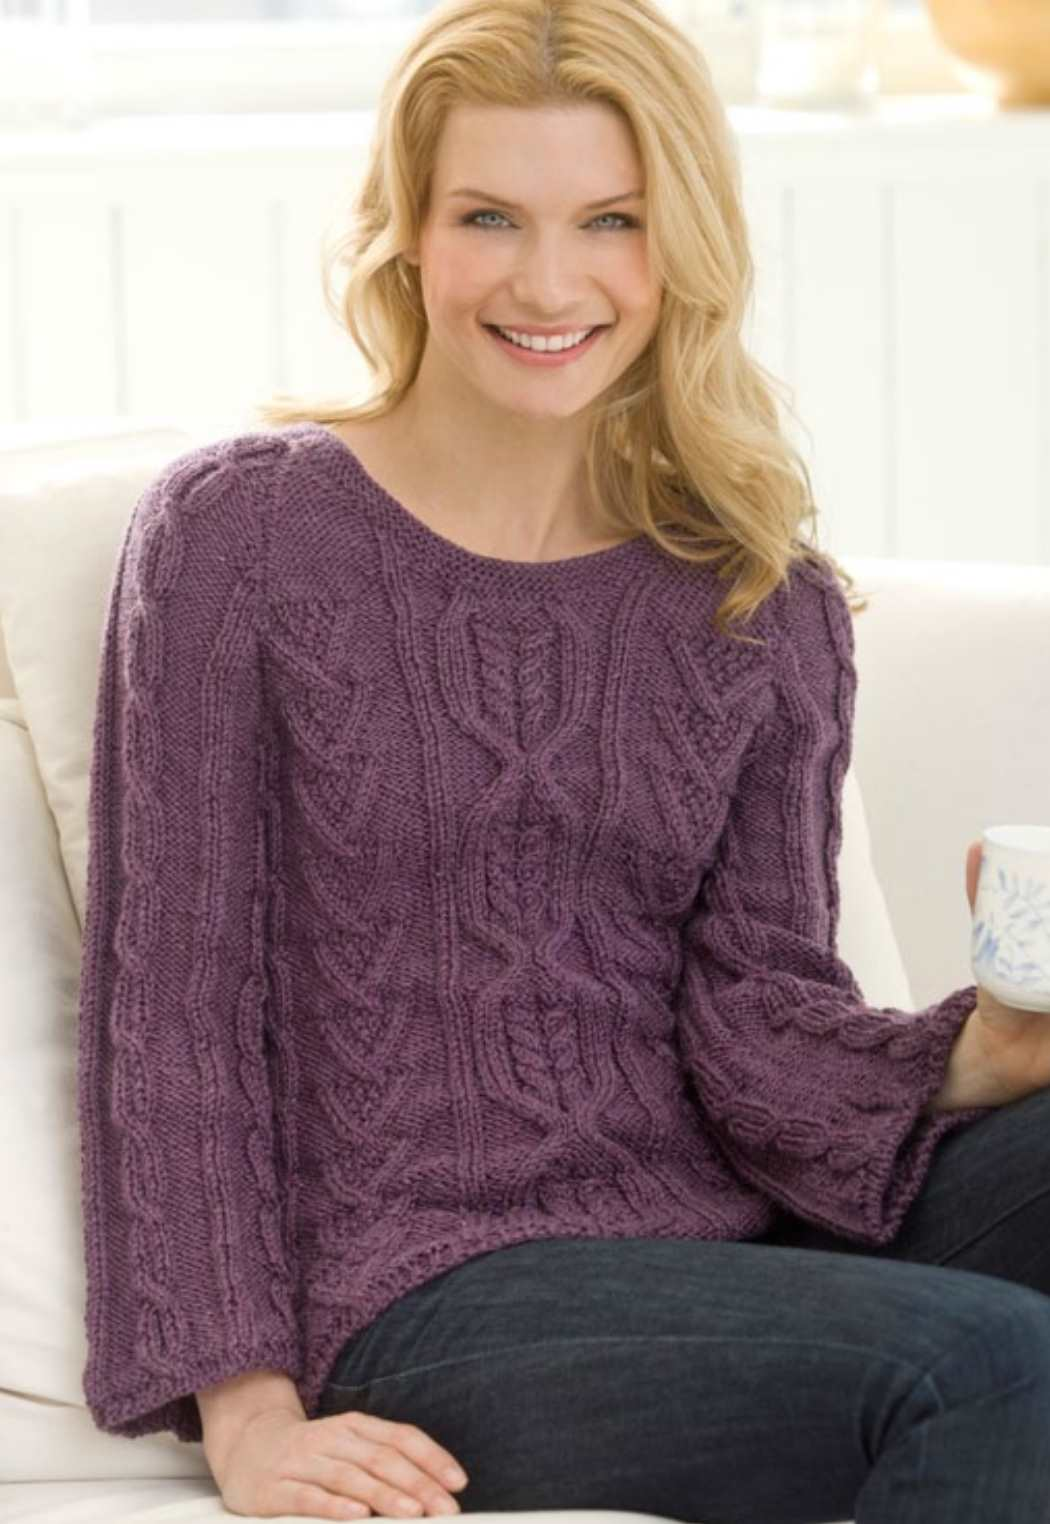 New Aran Sweater Free Knitting Pattern ⋆ Knitting Bee